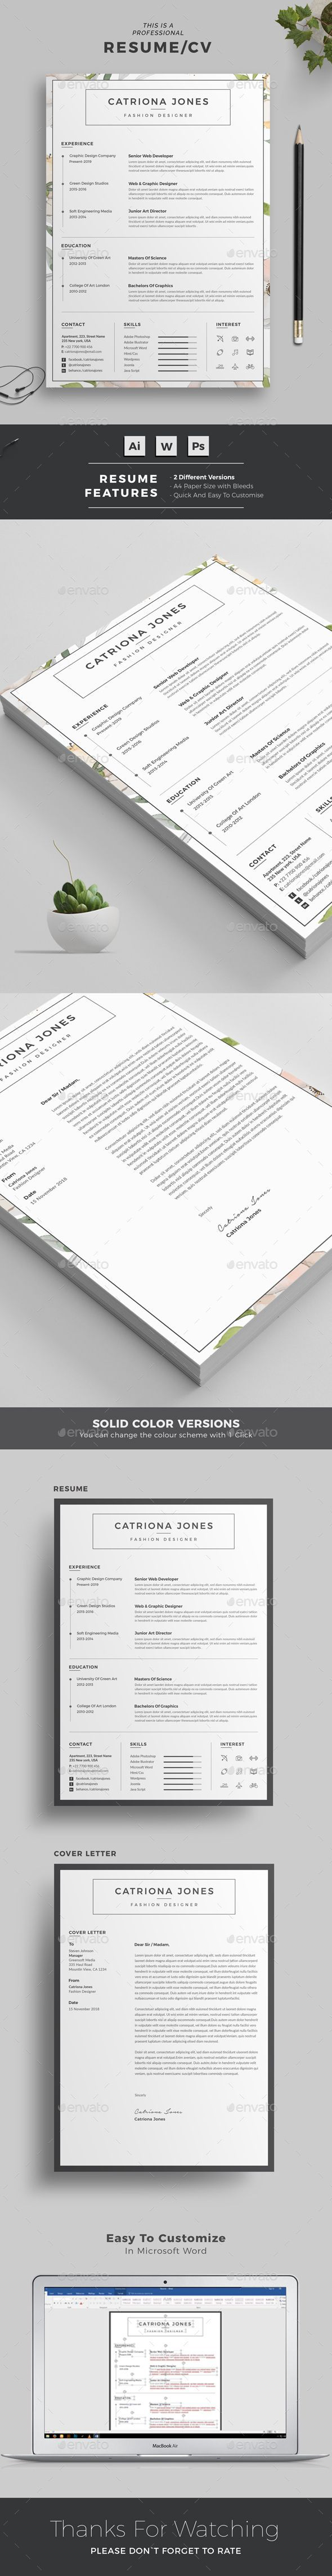 Resume Word Template / CV Template with super clean and